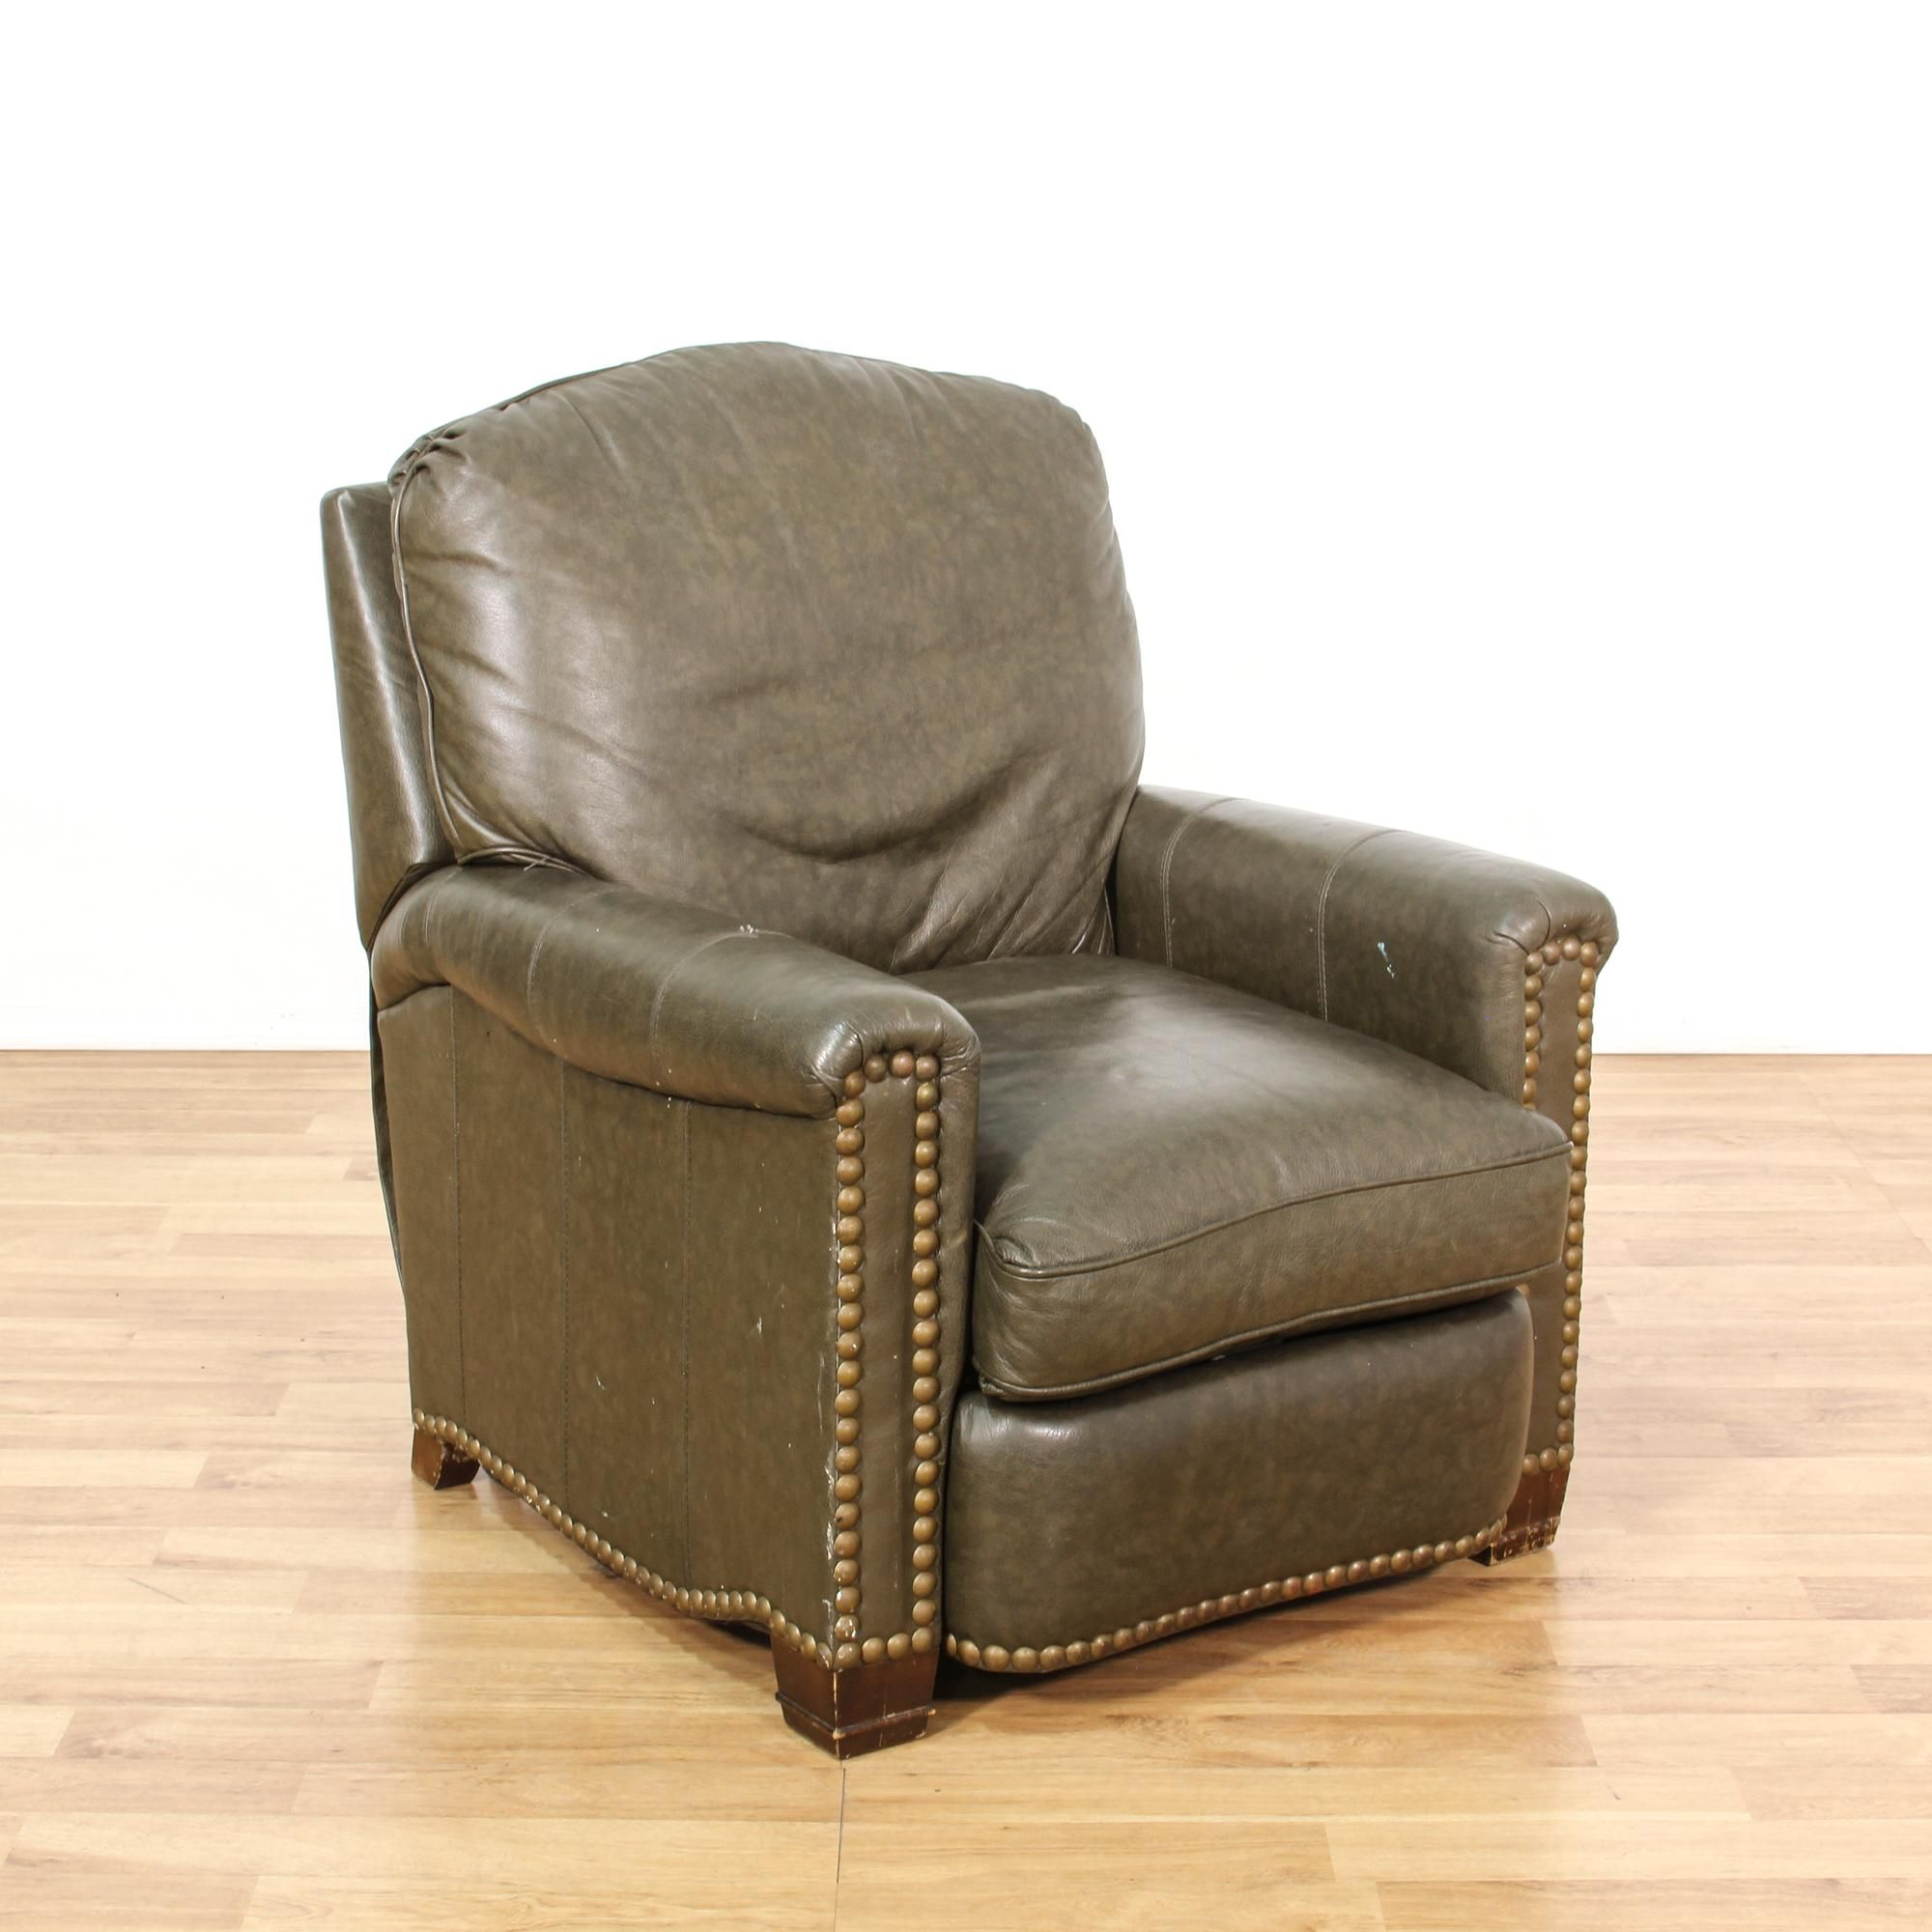 Dark Brown Leather Recliner Chair brown leather vinyl studded recliner chair | recliner, brown